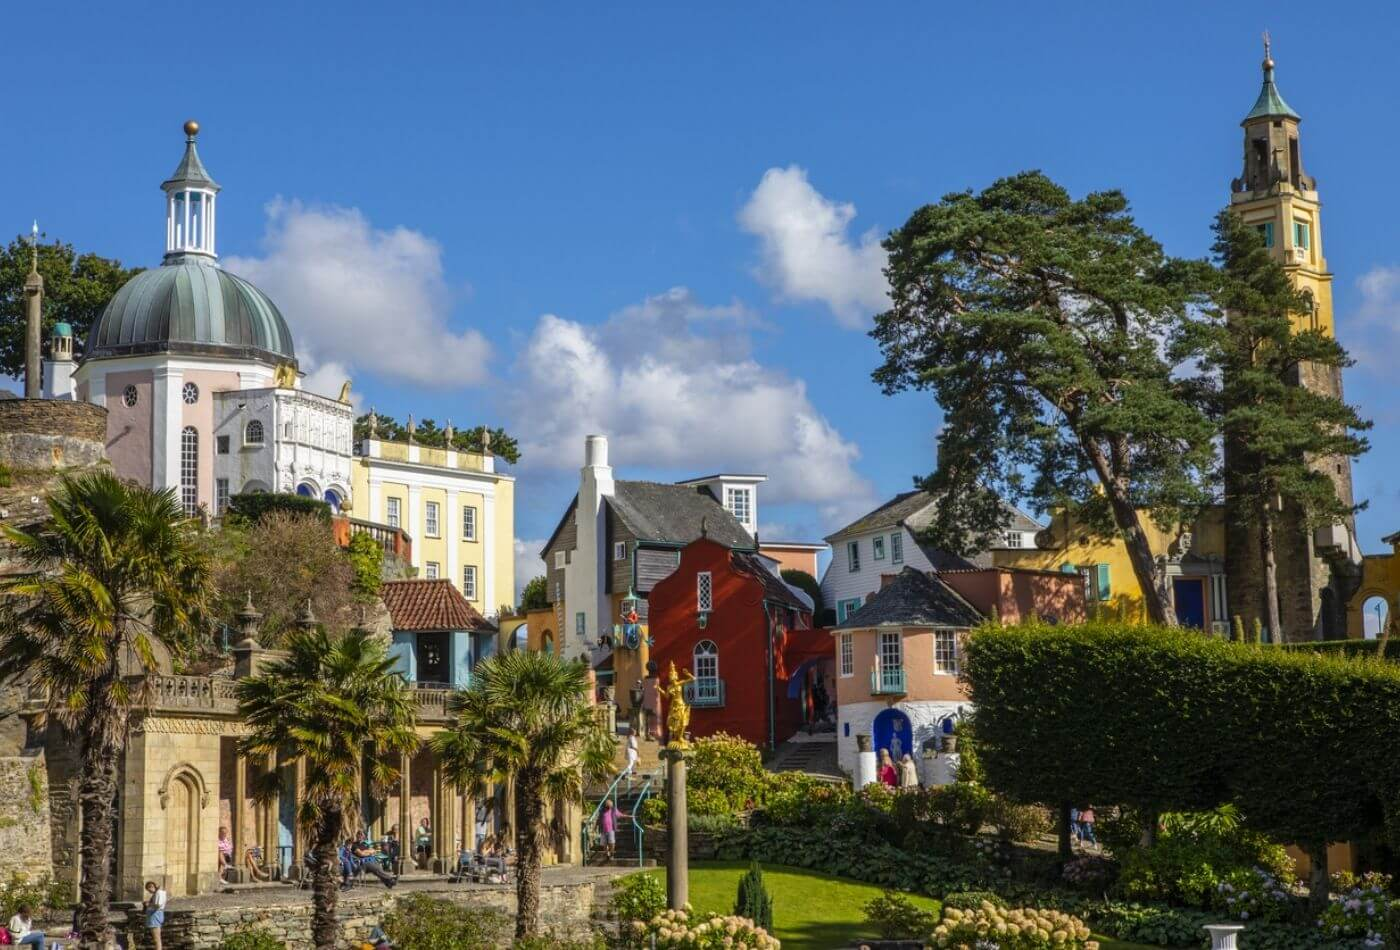 The colourful buildings of portmeirion village